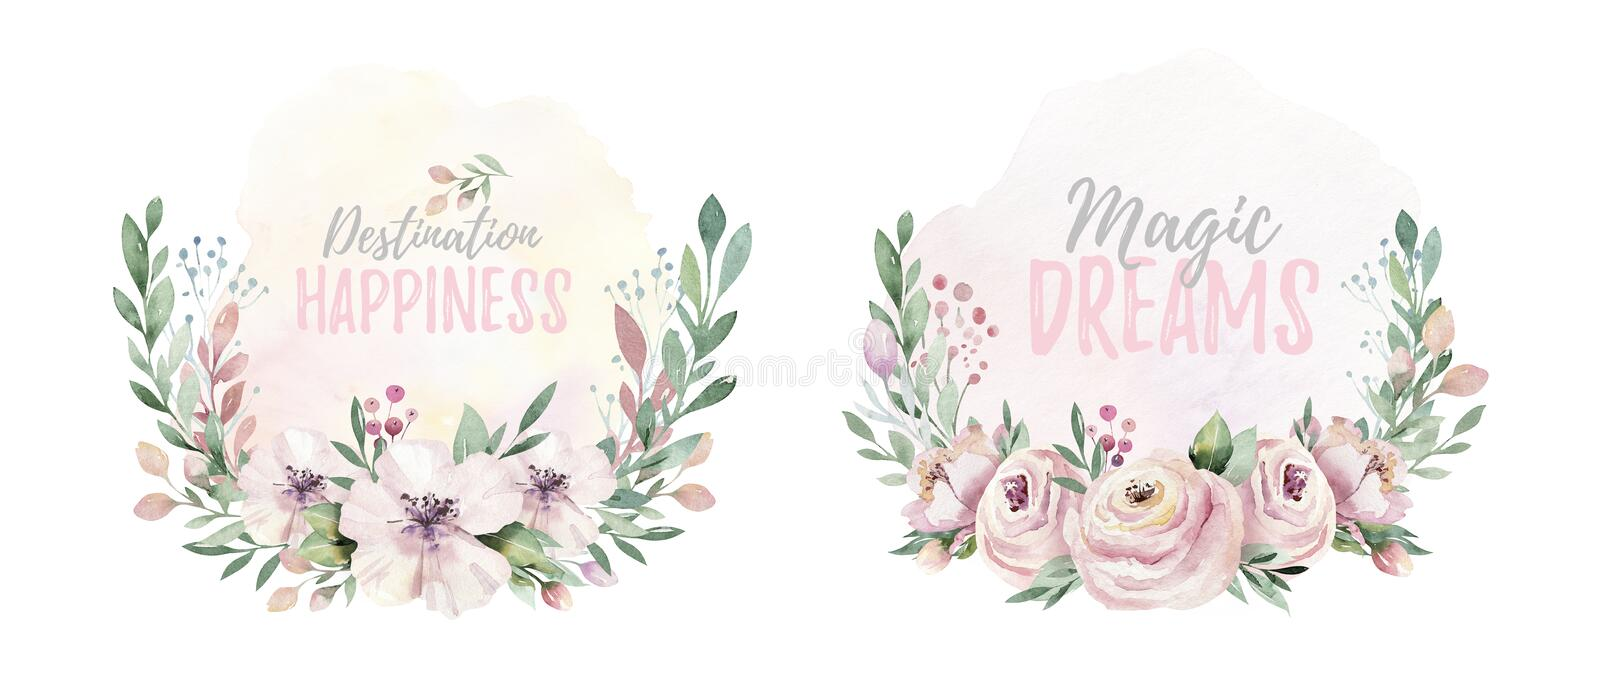 Hand drawn watercolor wreath illustration. Isolated Botanical wreathes of green branches and flower leaves. Spring and. Summer mood. Wedding blossom Floral royalty free illustration